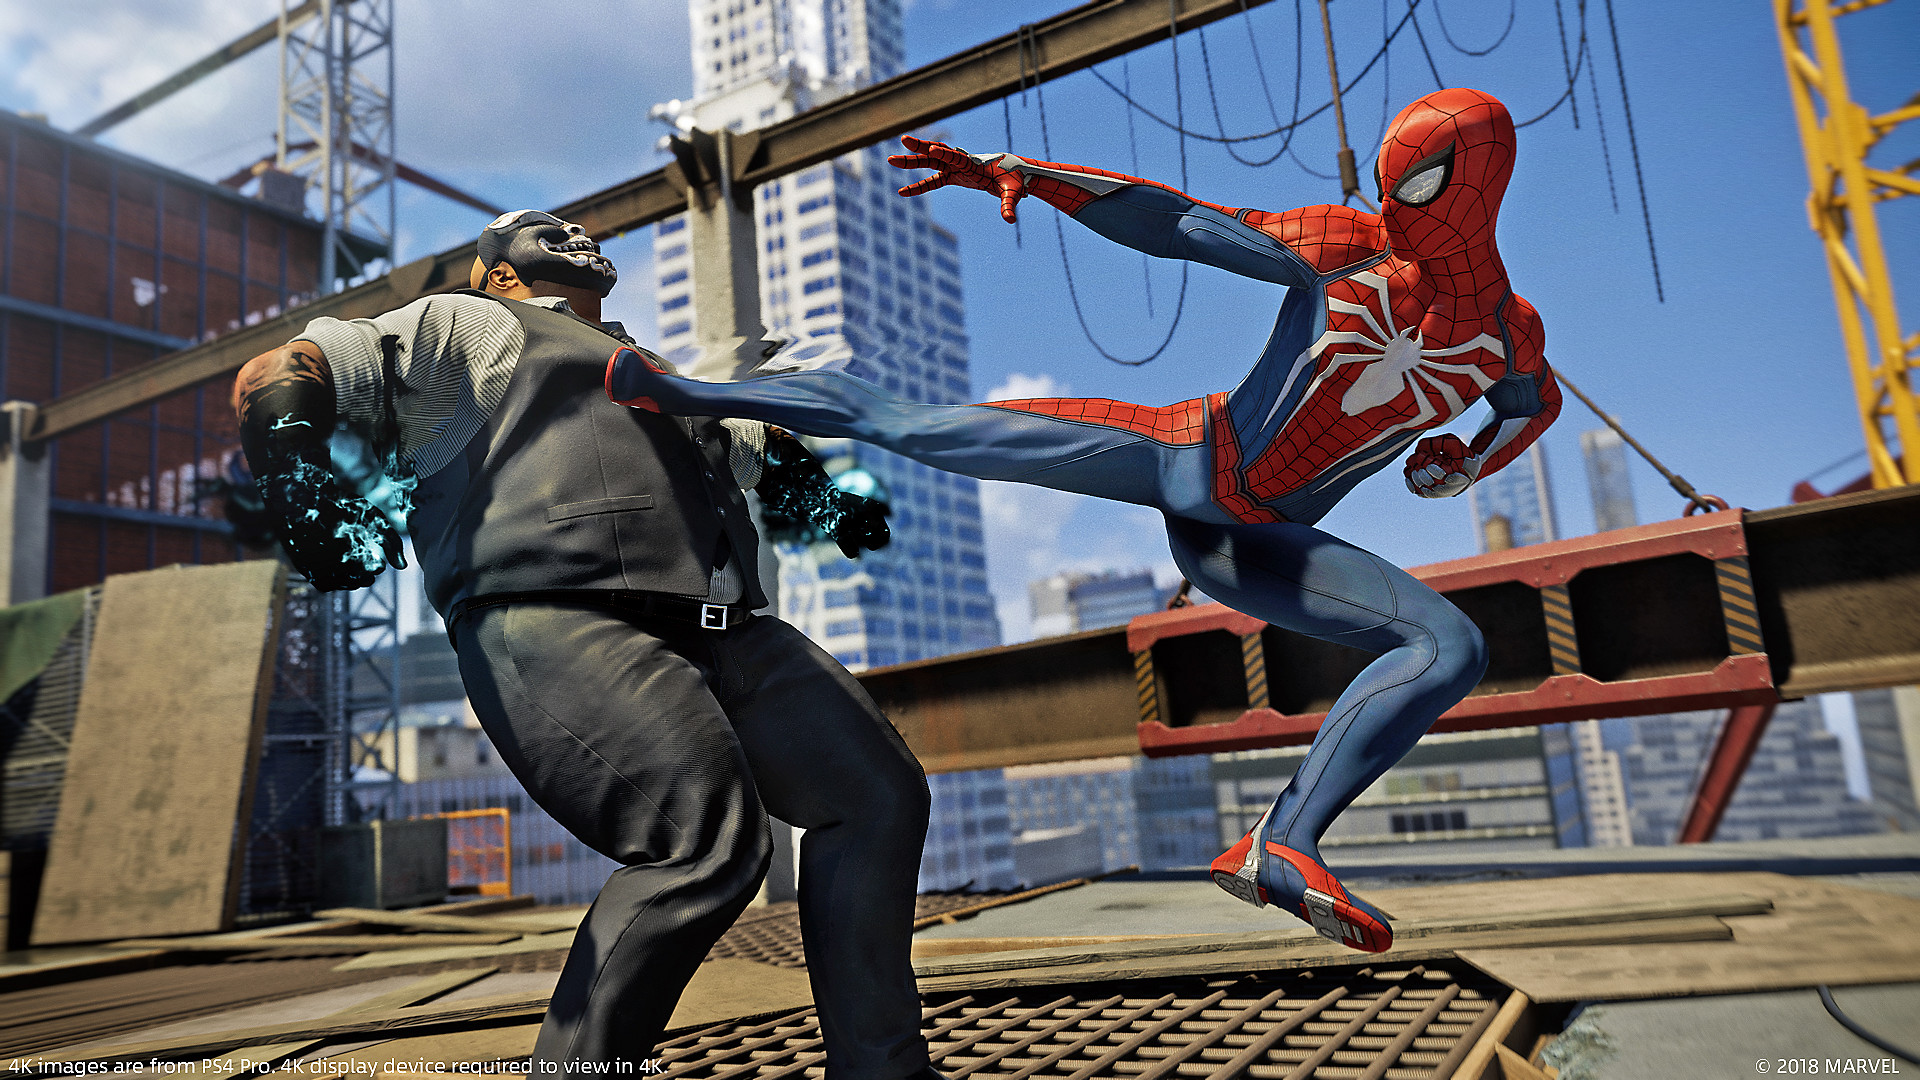 Marvel's Spider-Man combat